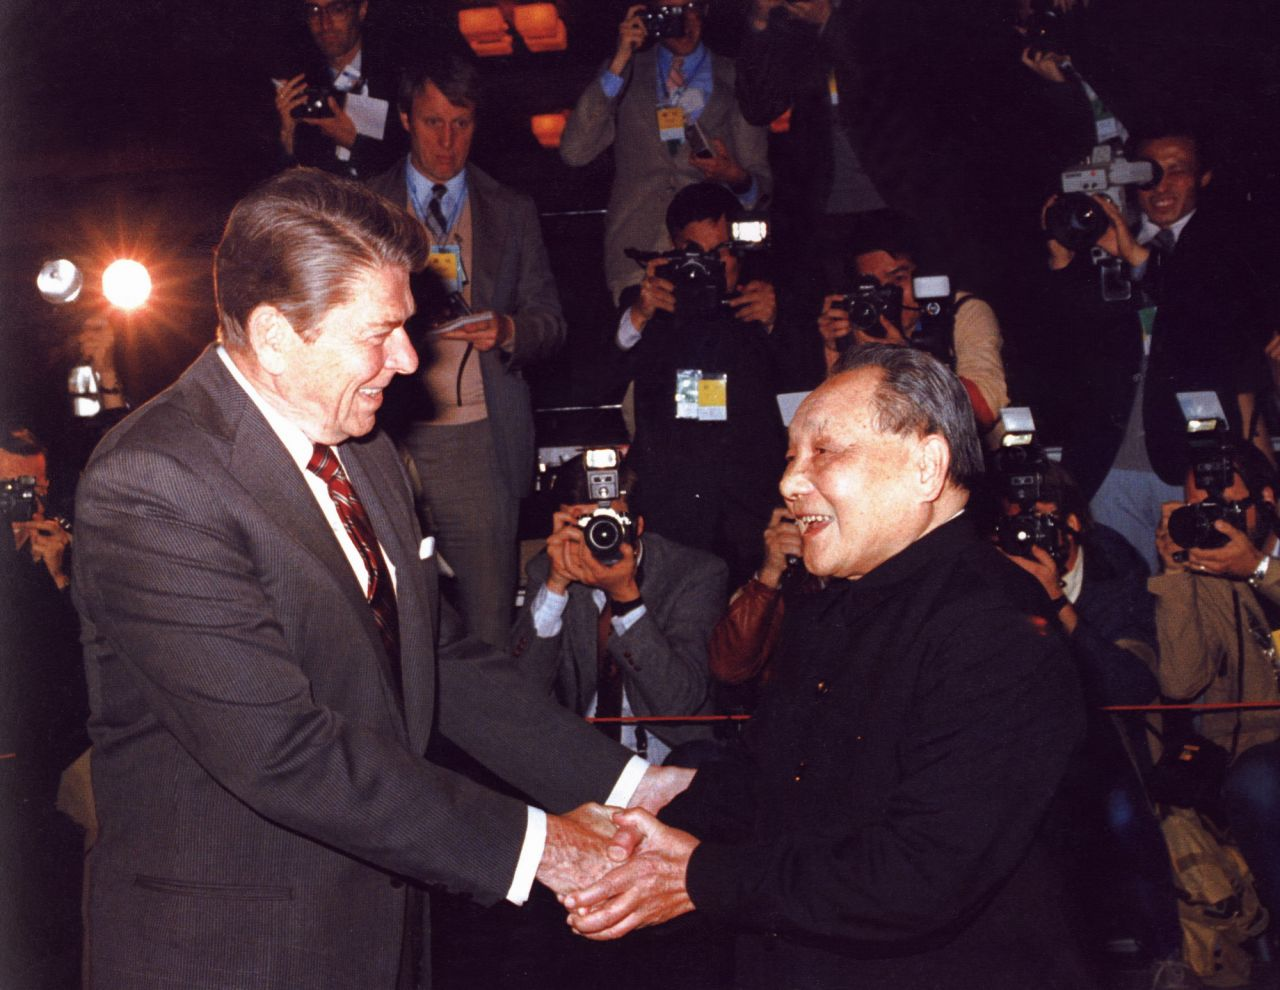 Deng Xiaoping meeting President Reagan at the Great Hall of the People in Beijing on April 28, 1984.